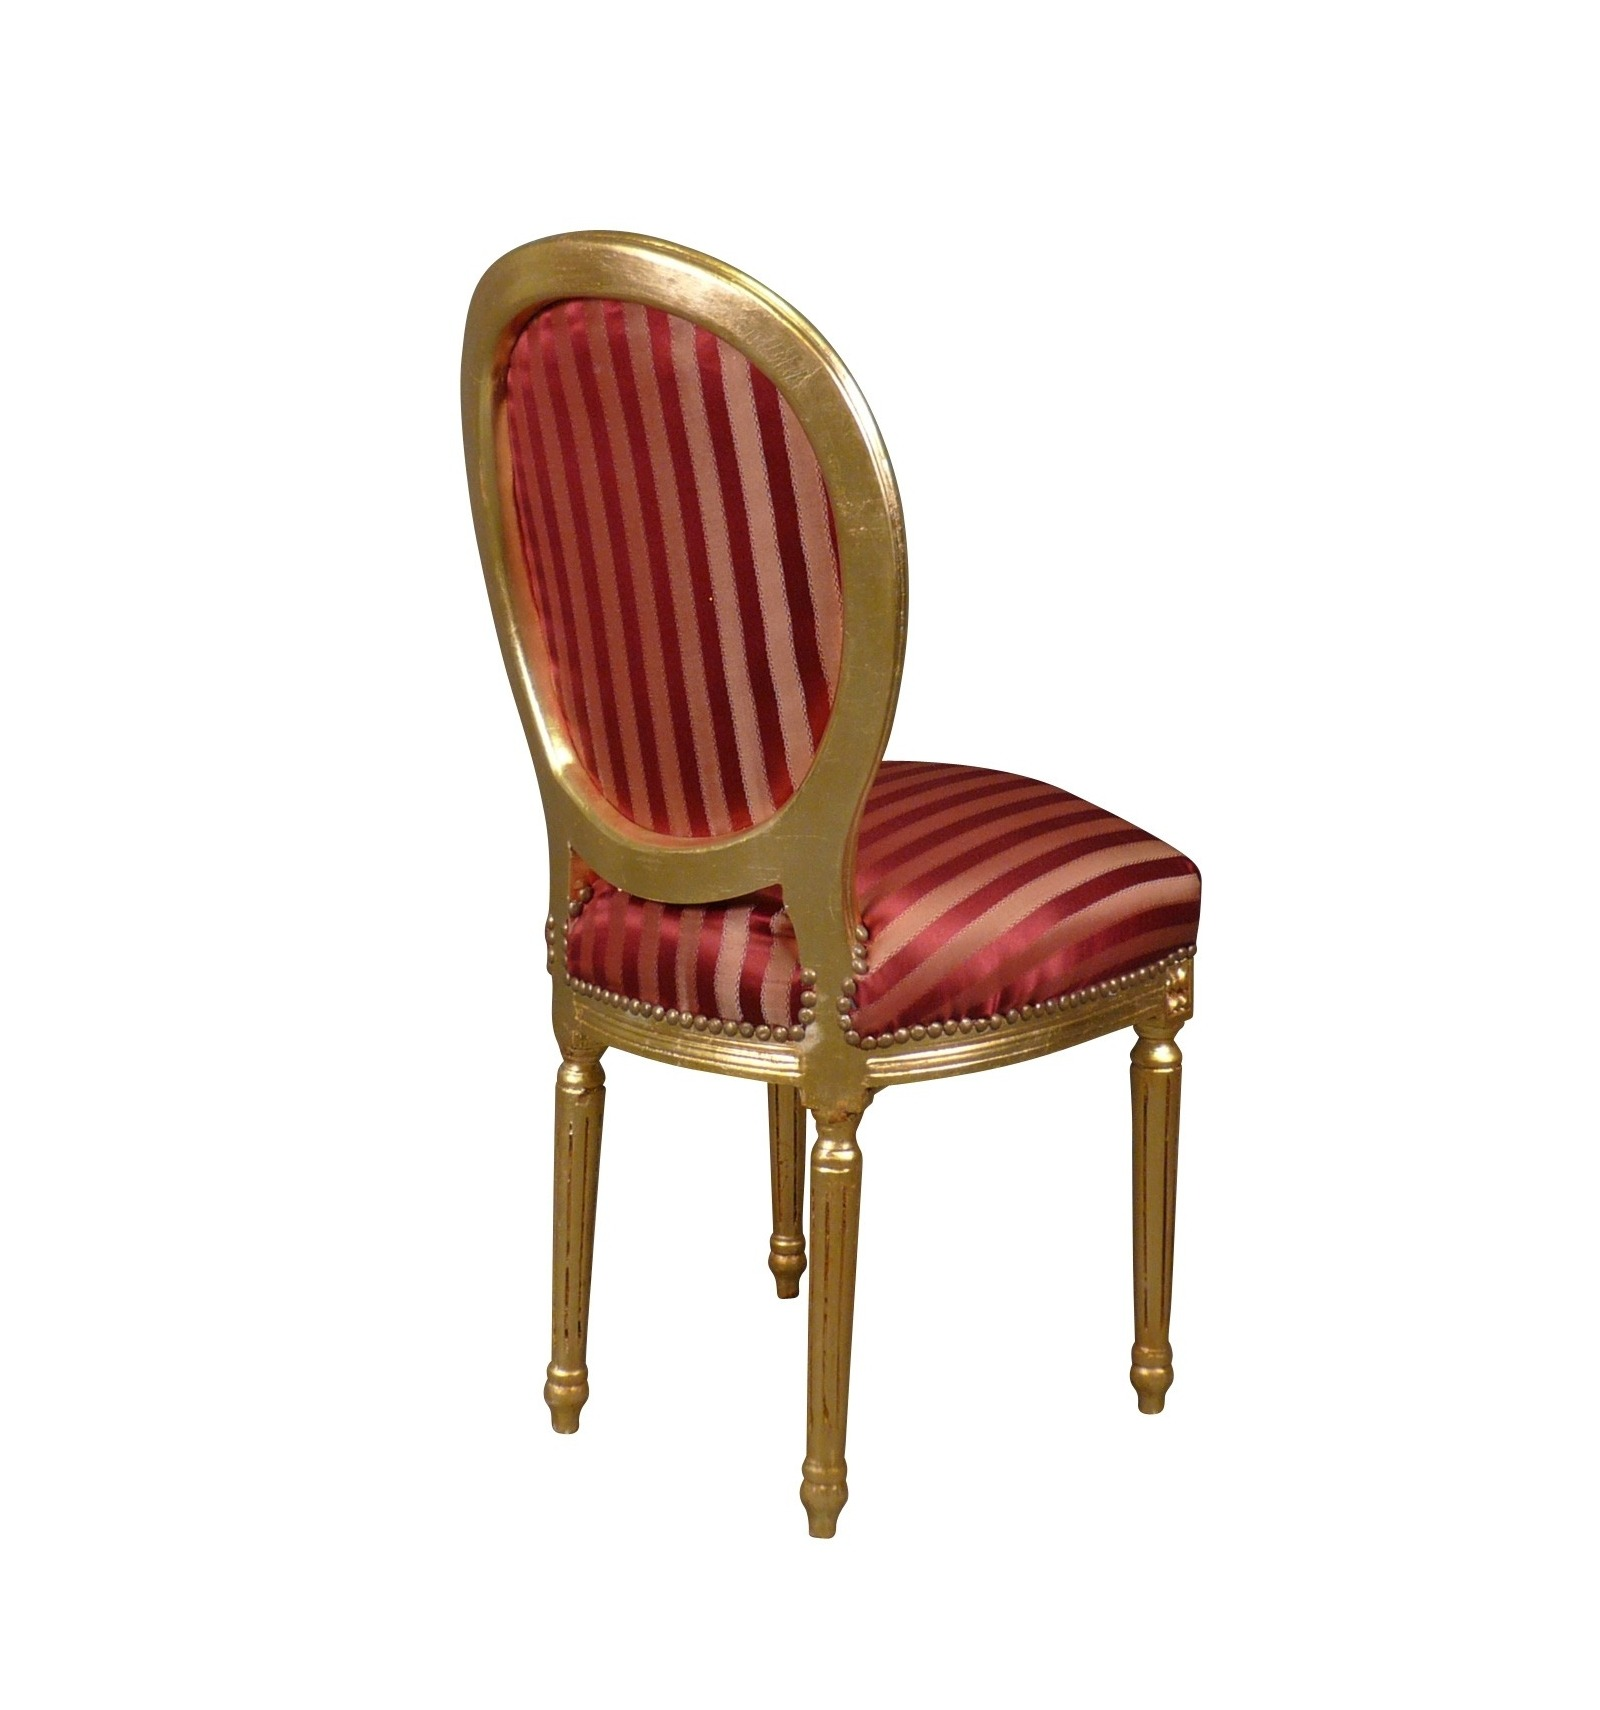 Chair baroque louis xvi style for Baroque chaise lounge sofa